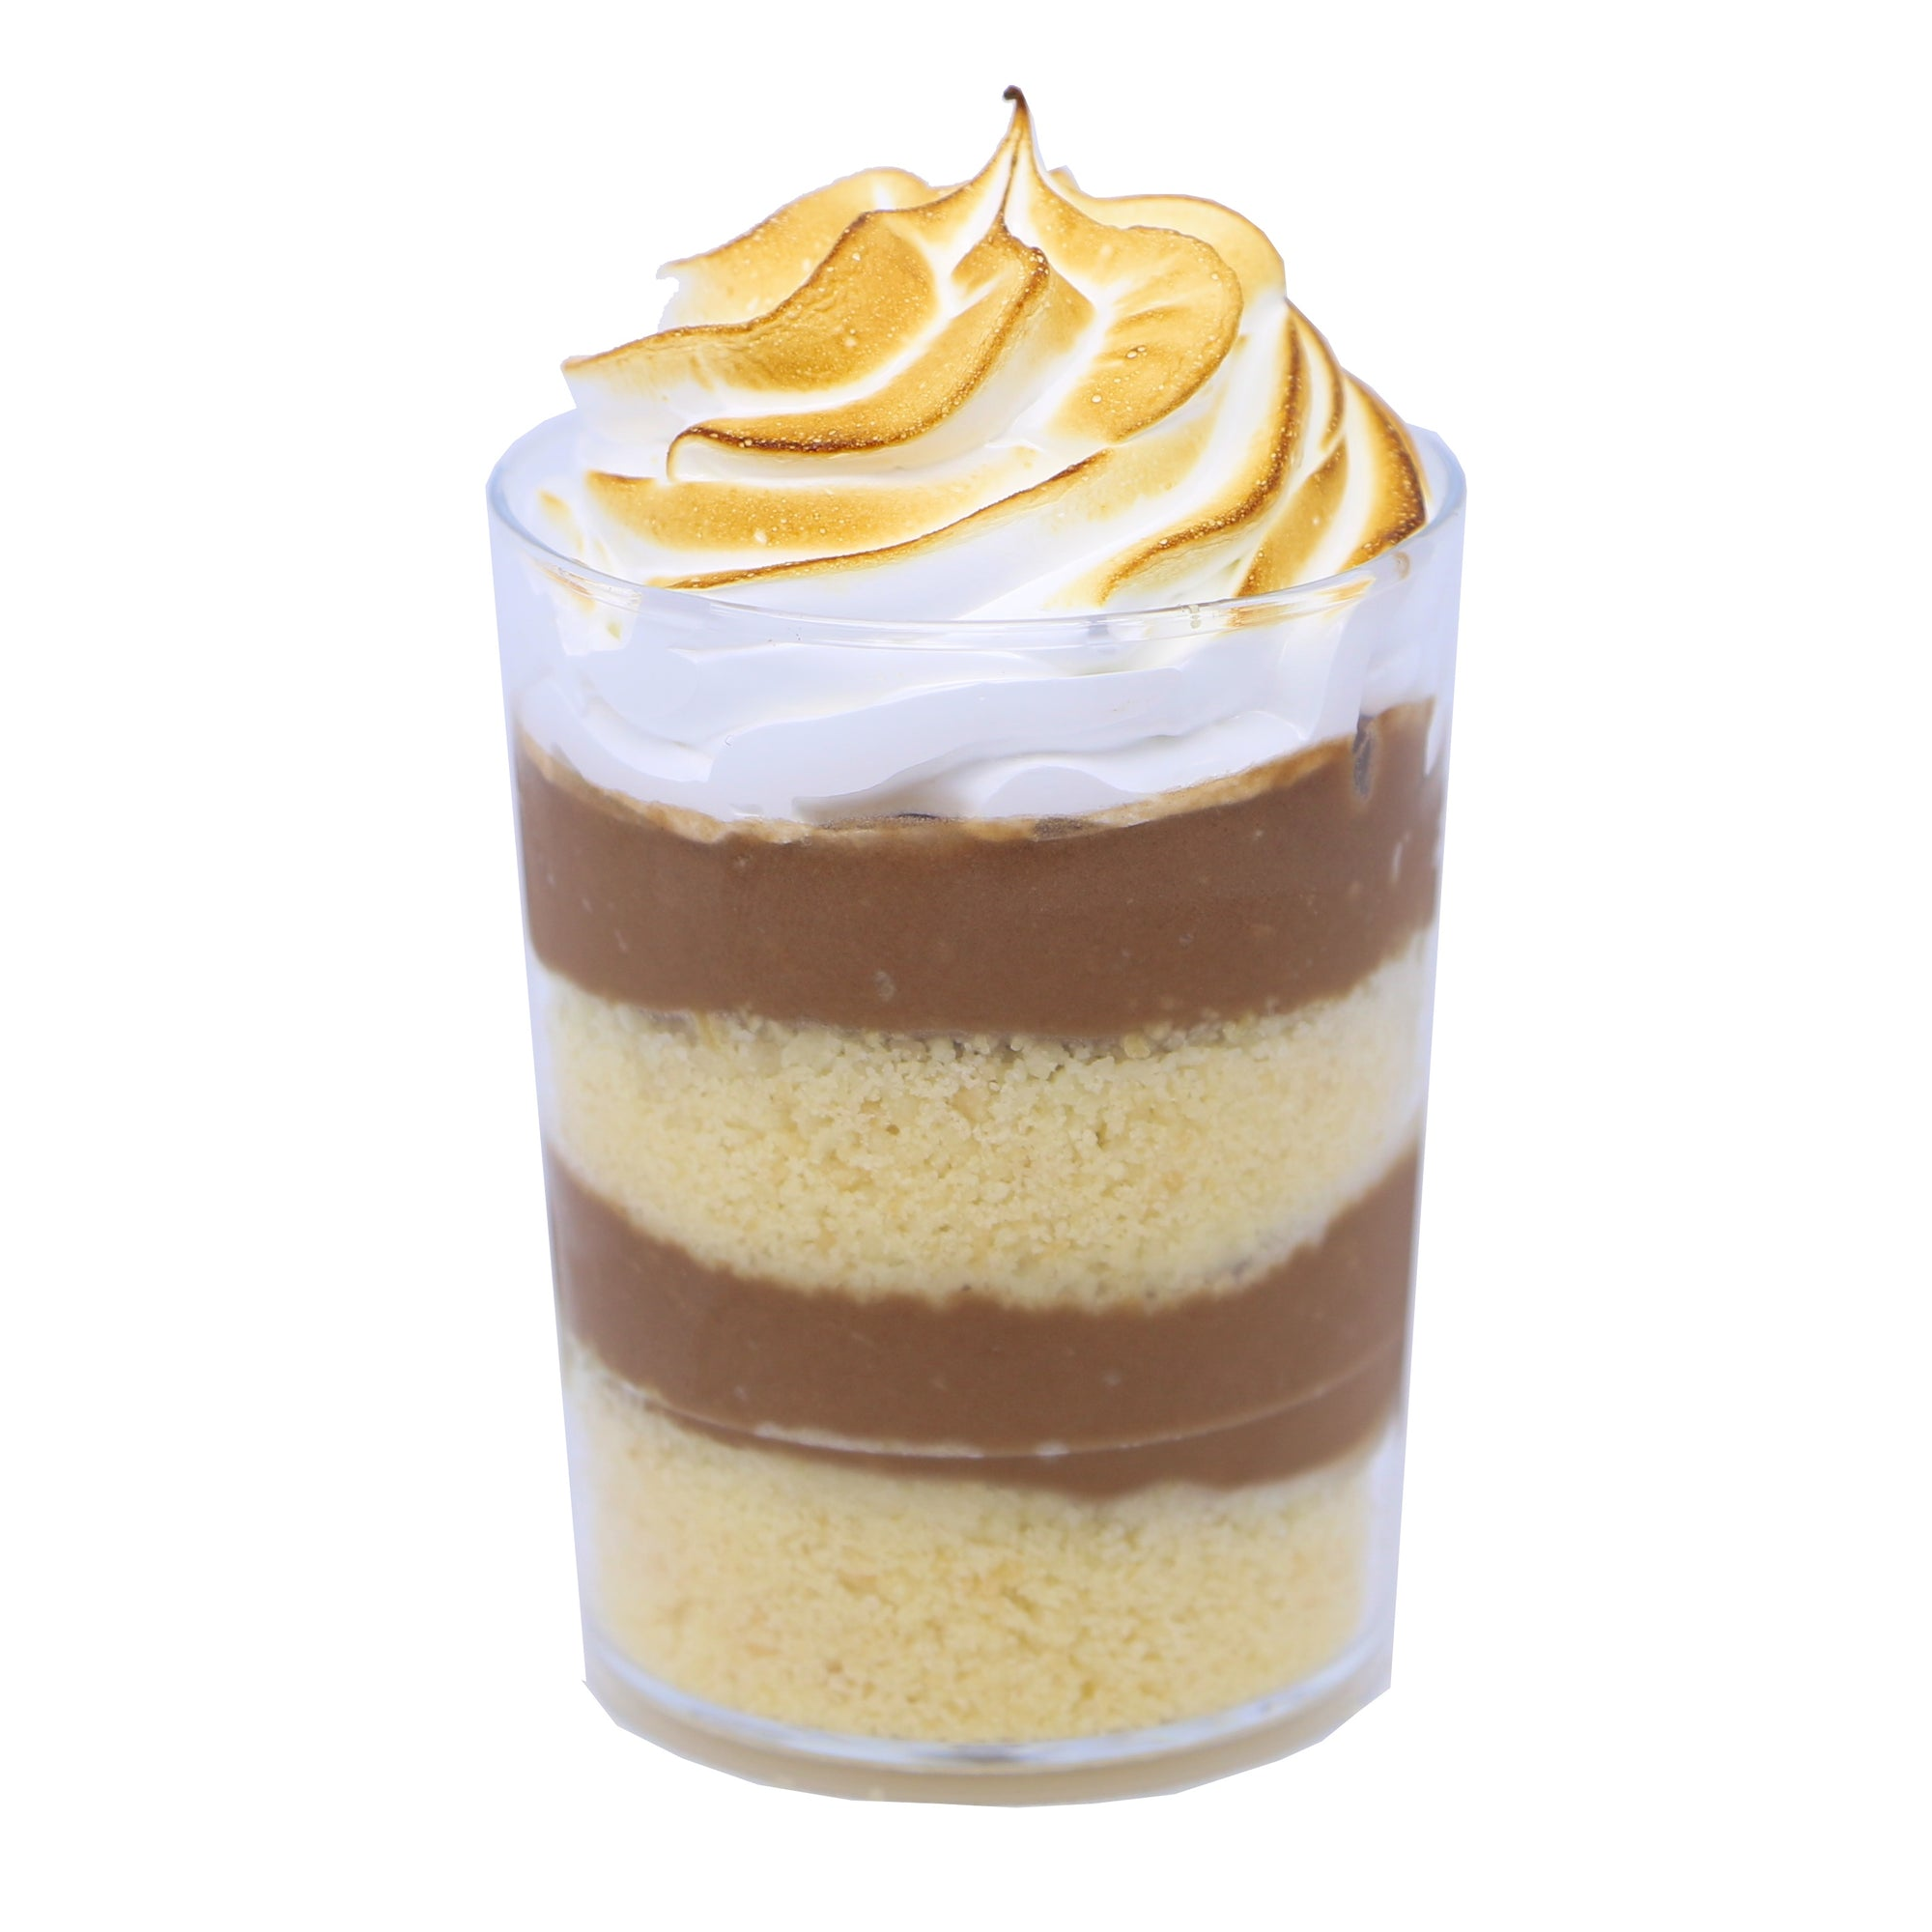 Dessert Cup - S'mores - Treats2eat - Wedding & Birthday Party Dessert Catering Near Me